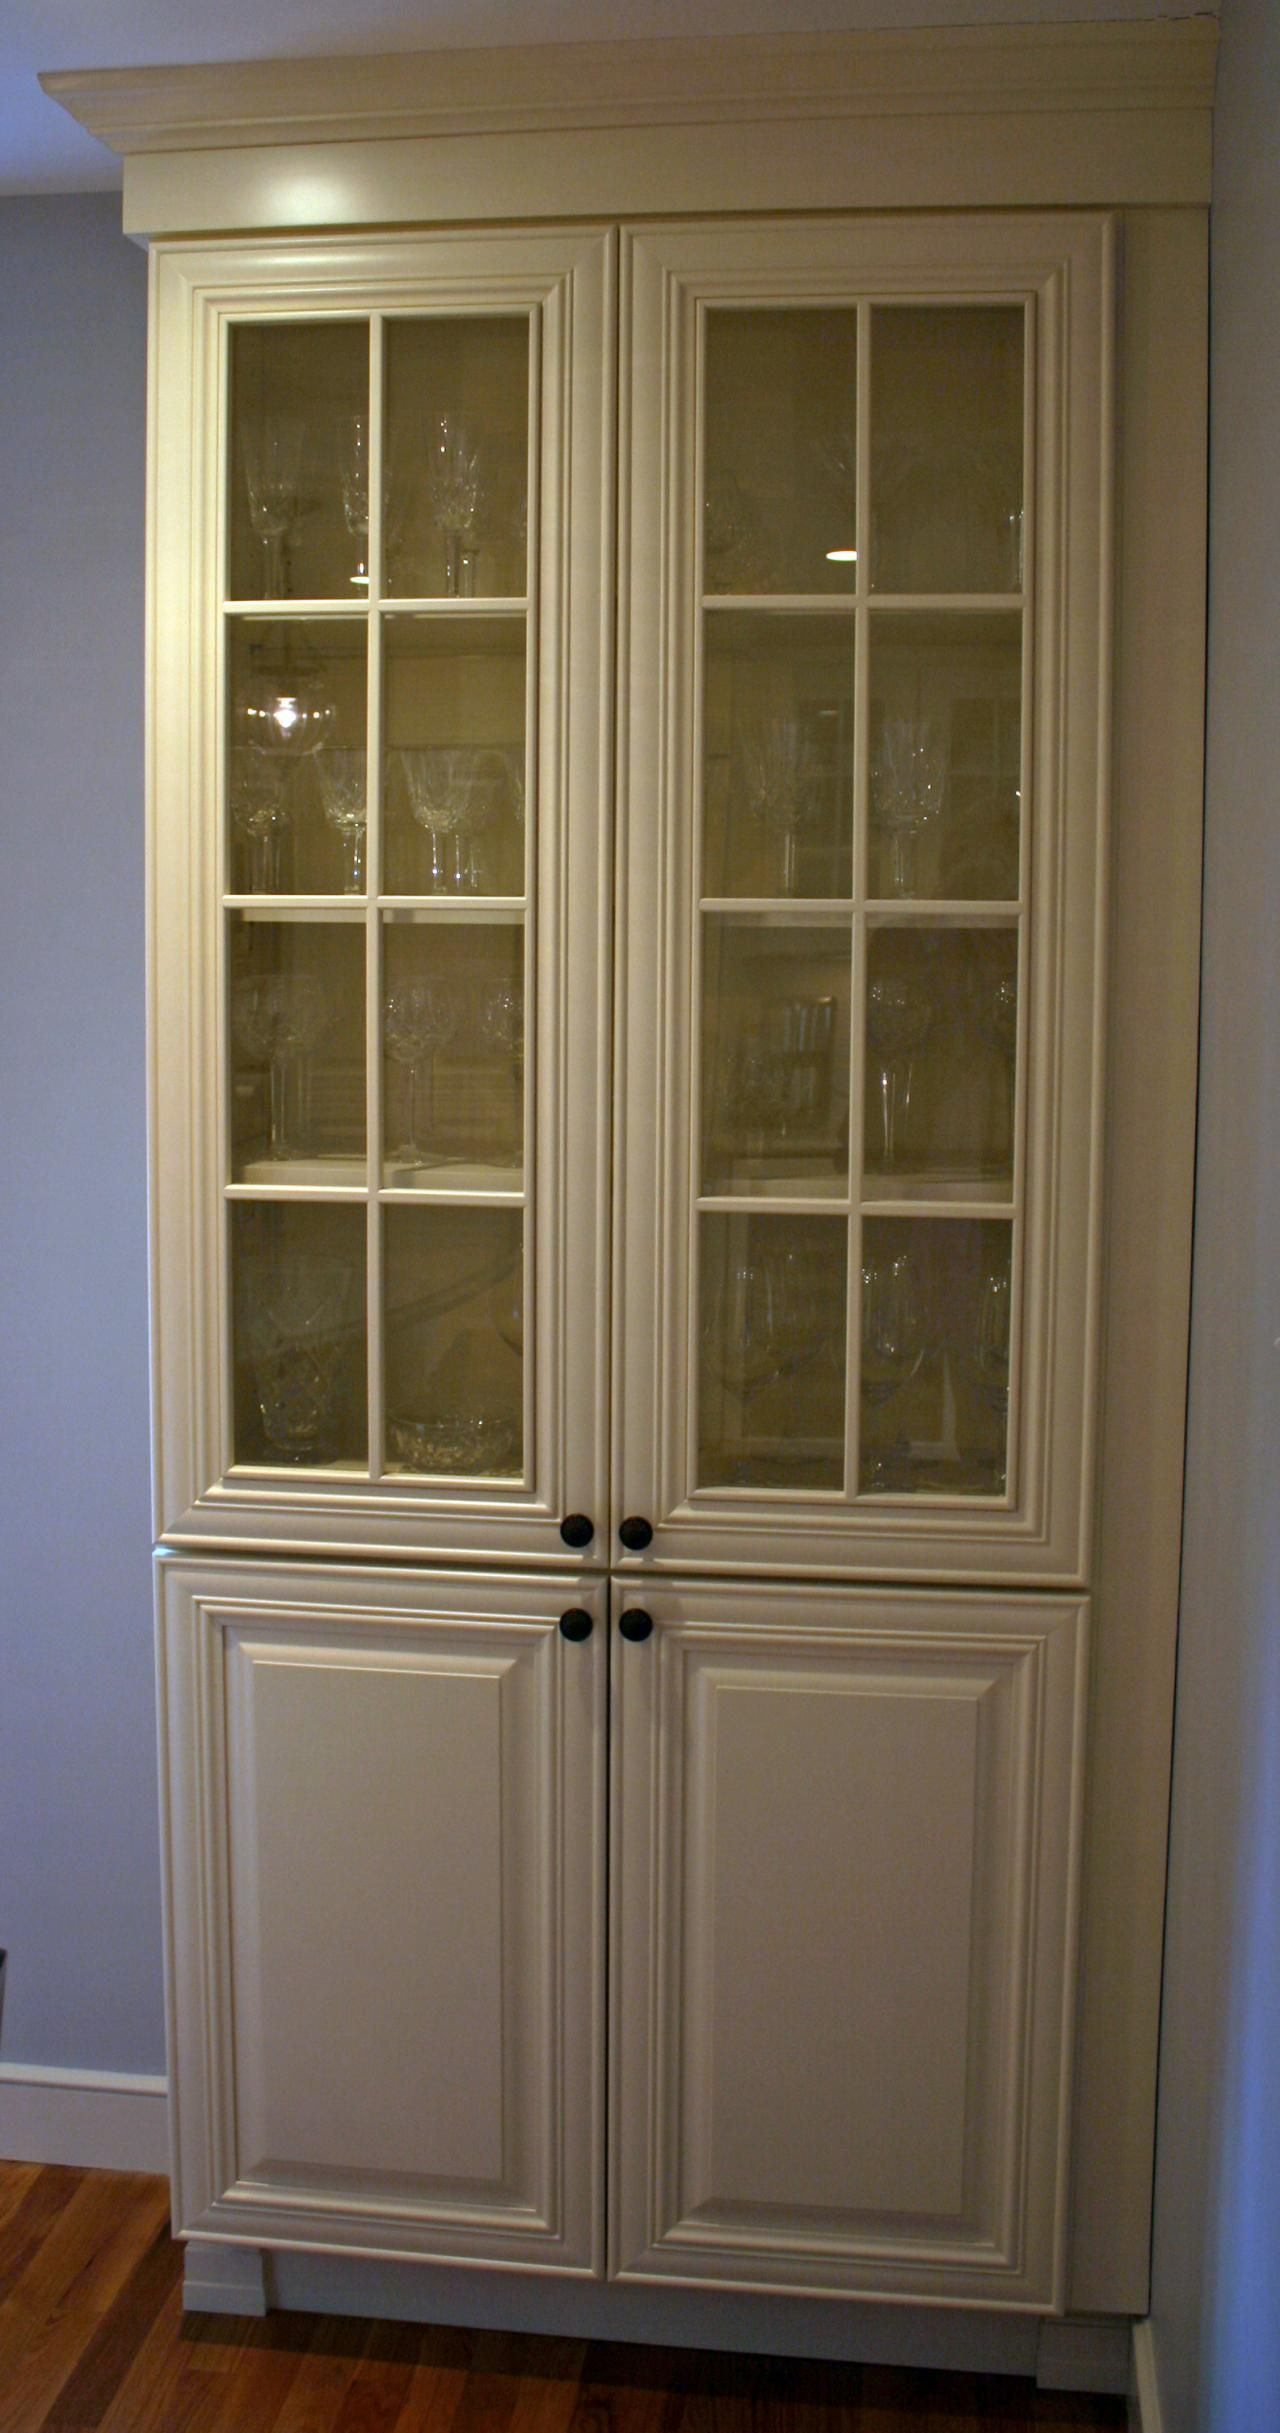 Tall display cabinet with clear glass | Kitchen display ...